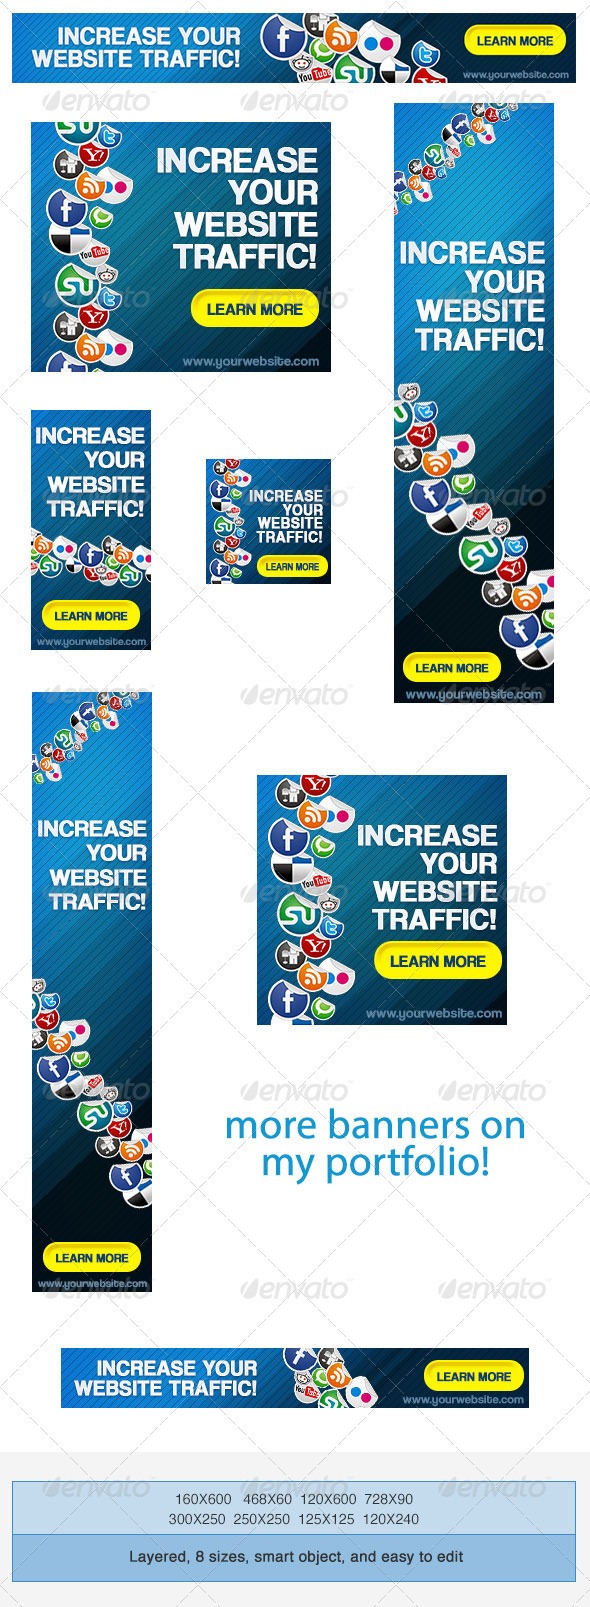 GraphicRiver Social Media Network Banner Ad Template 3868826